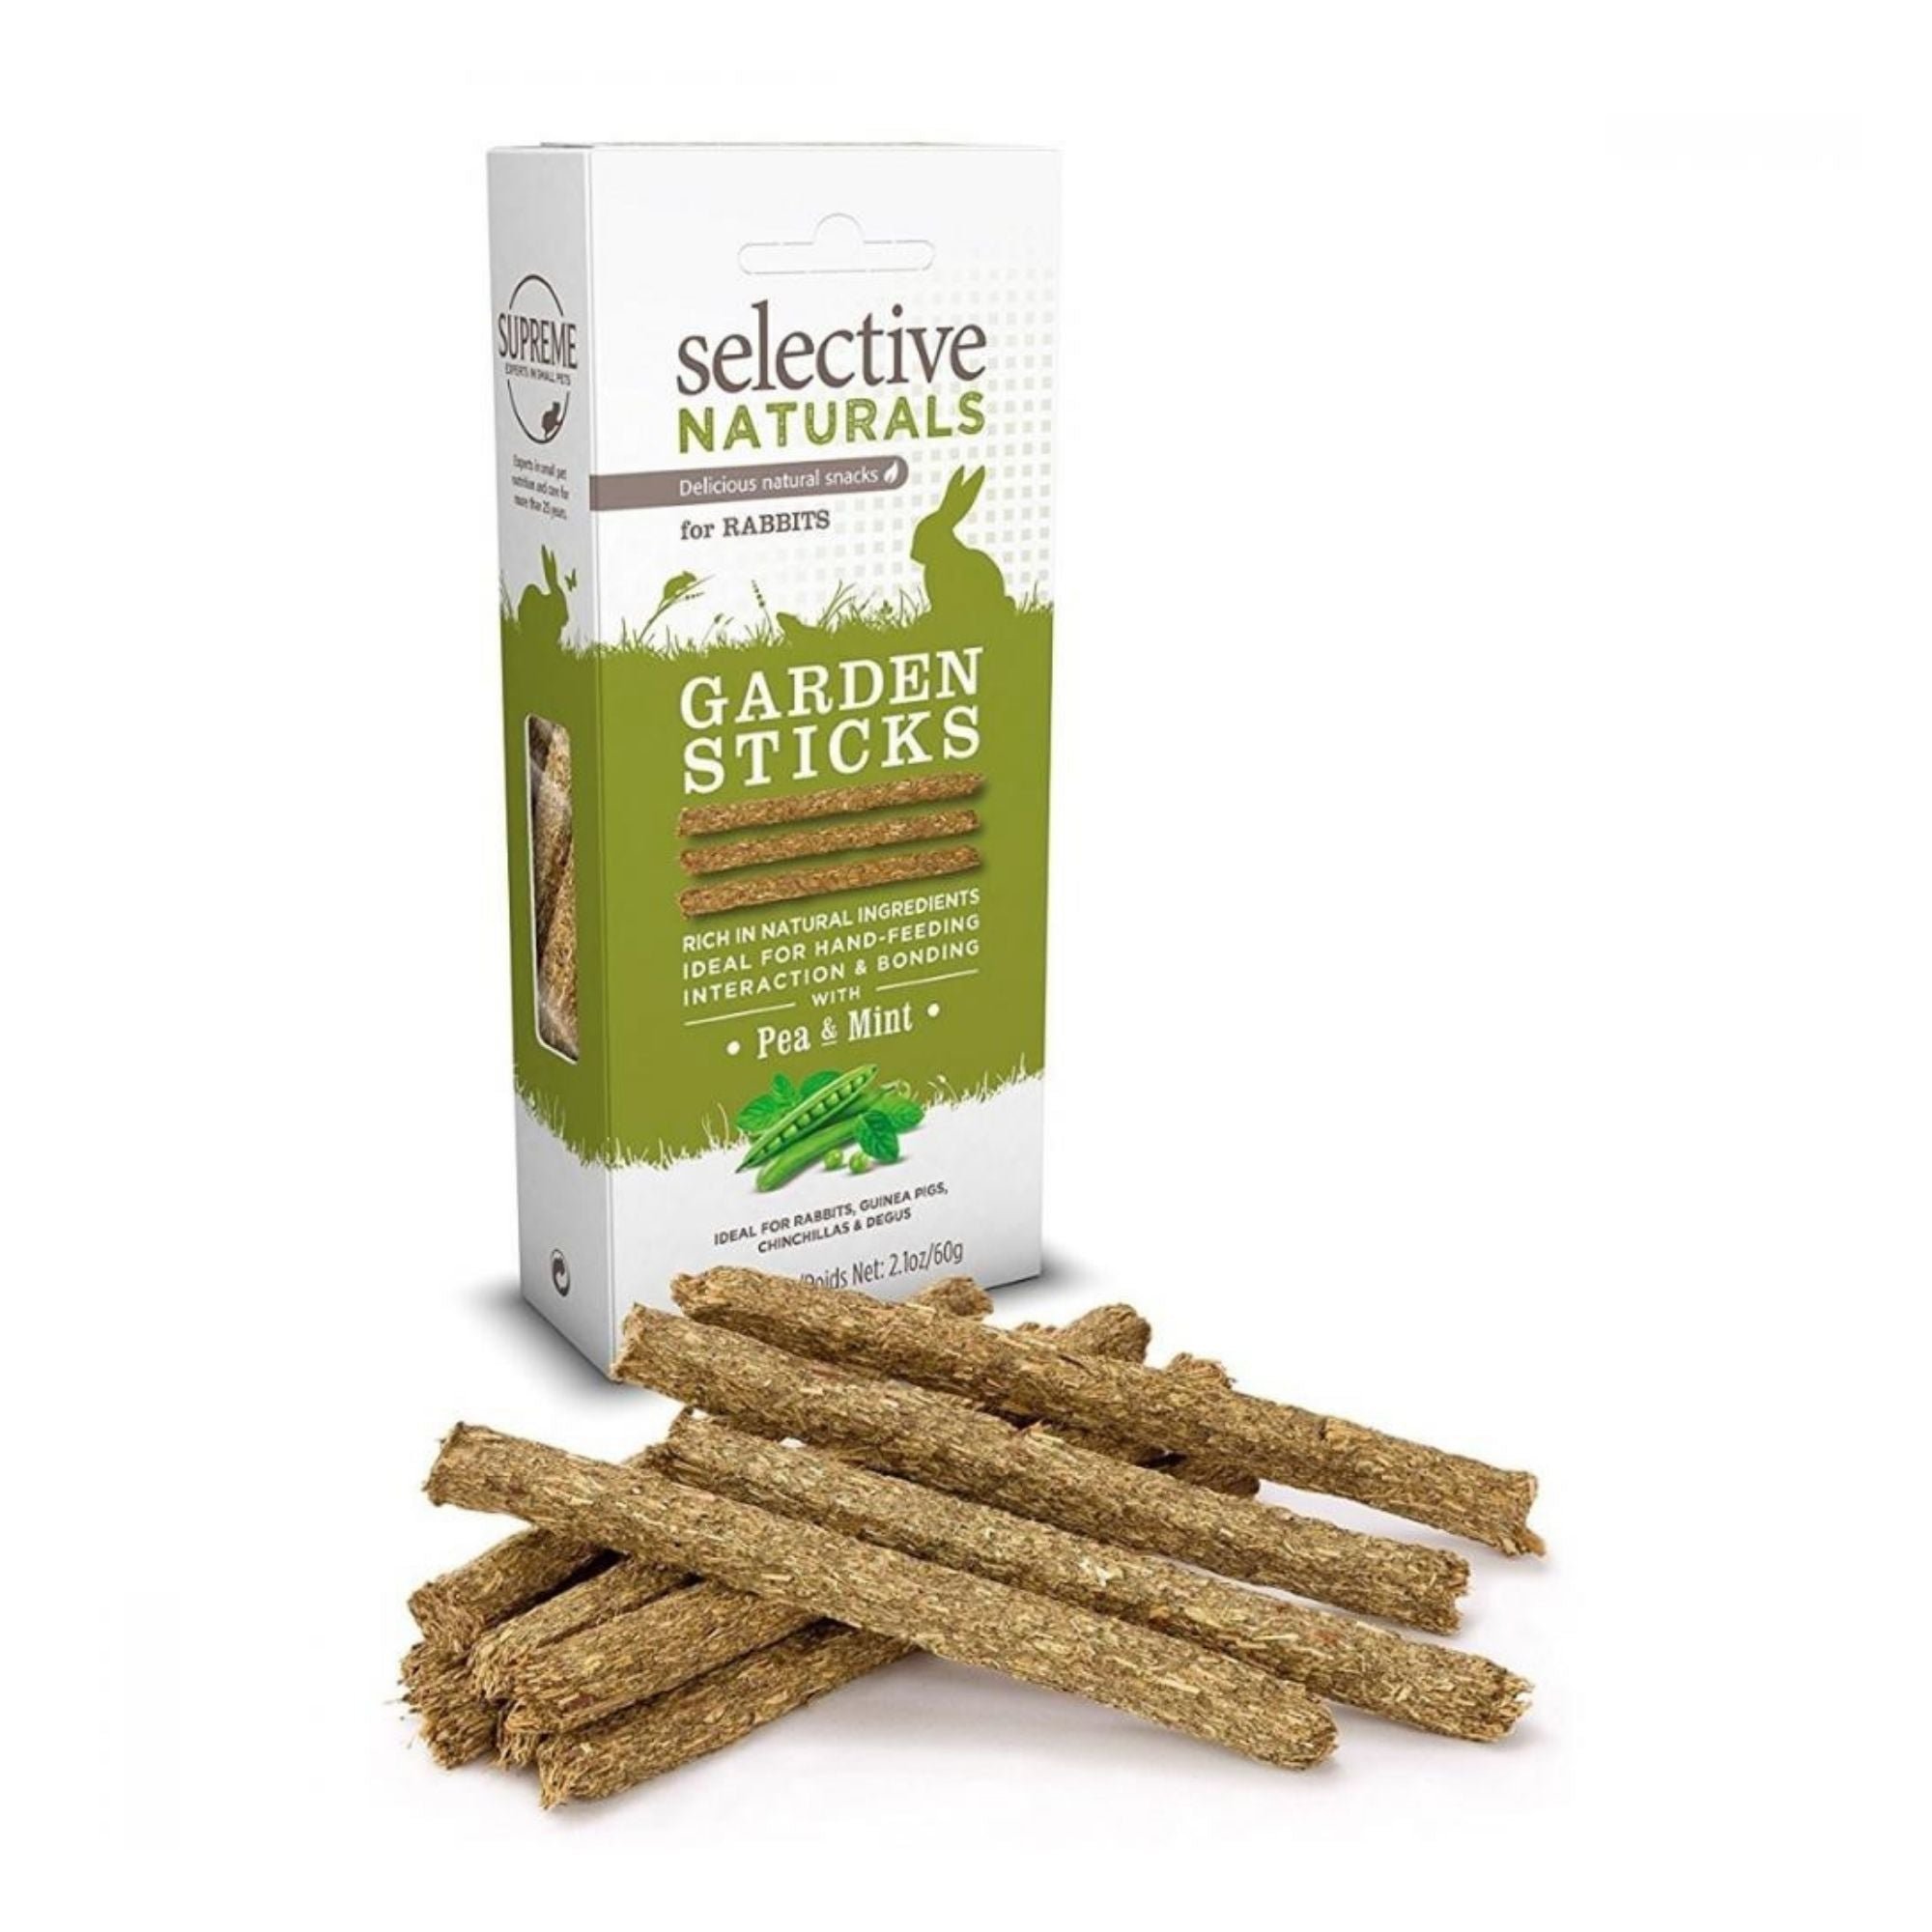 Supreme Selective Naturals Garden Sticks for Rabbits | Barks & Bunnies